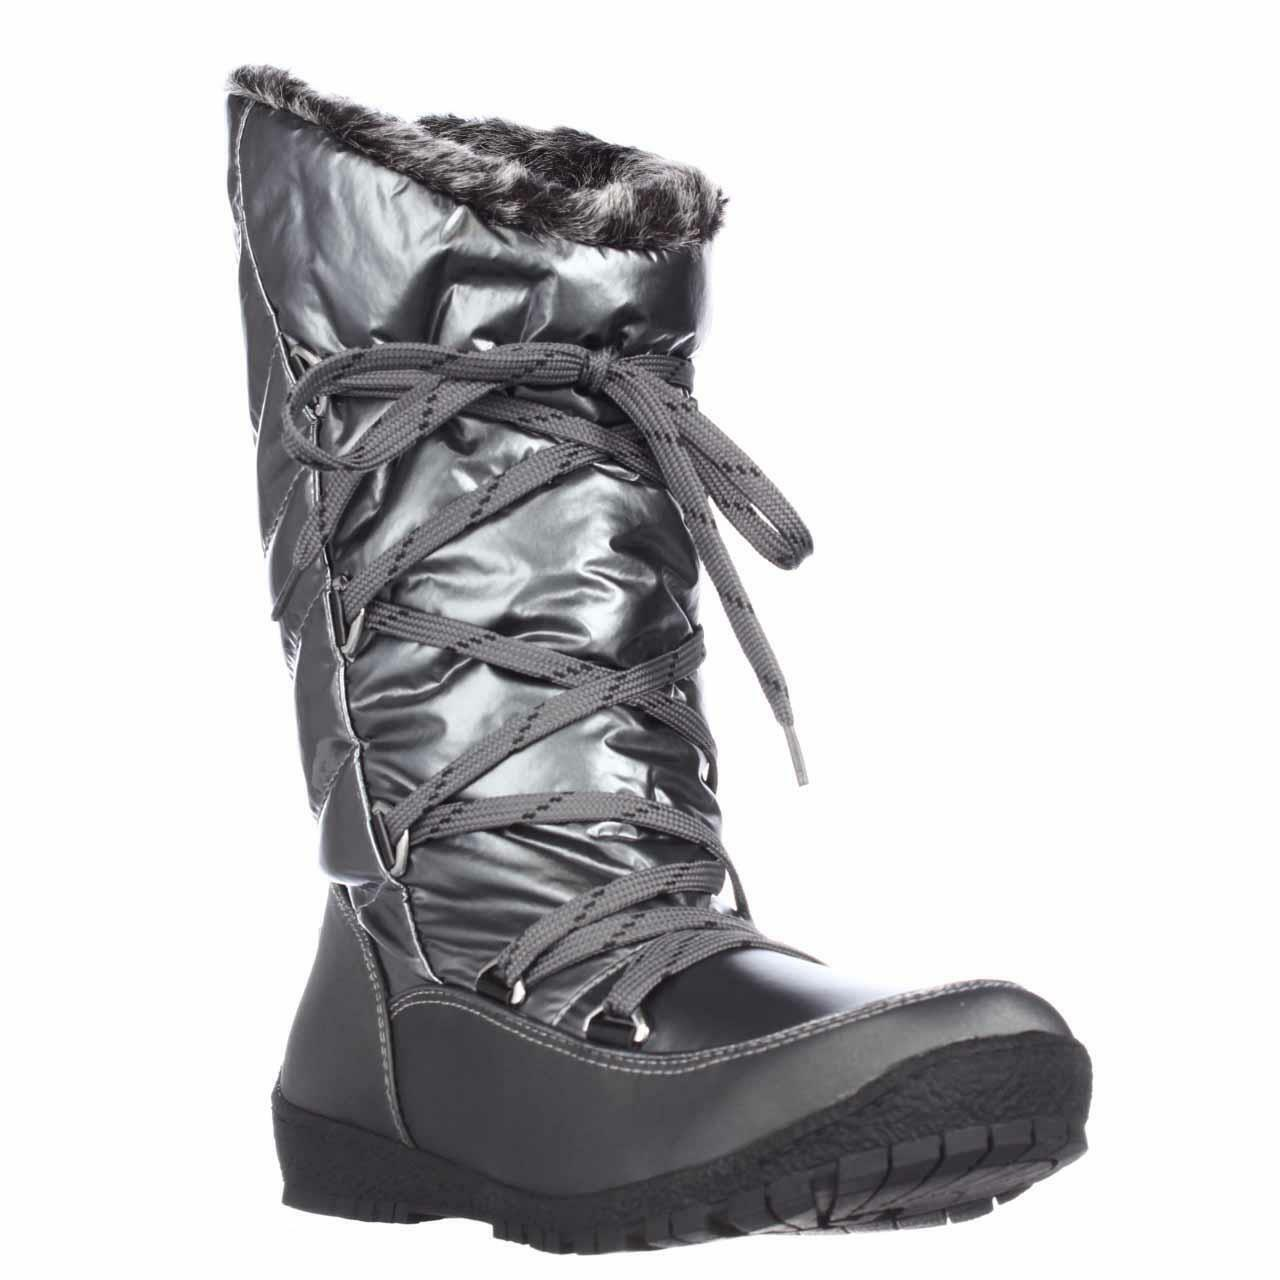 Sporto® Charles Waterproof Lace-Up Mid-Calf Quilted Boot Pewter 8 M